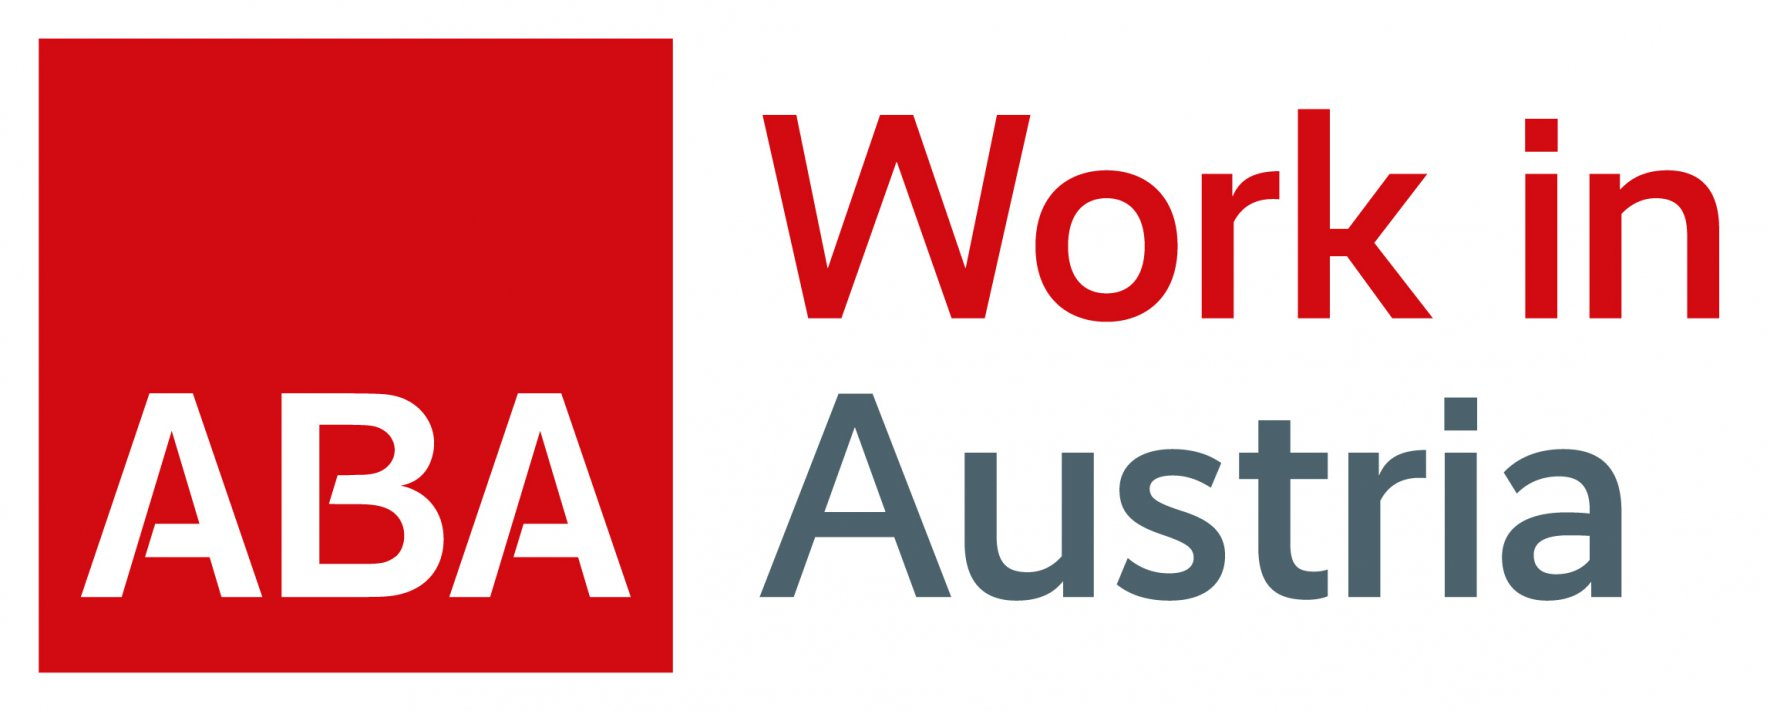 ABA - Work in Austria logo